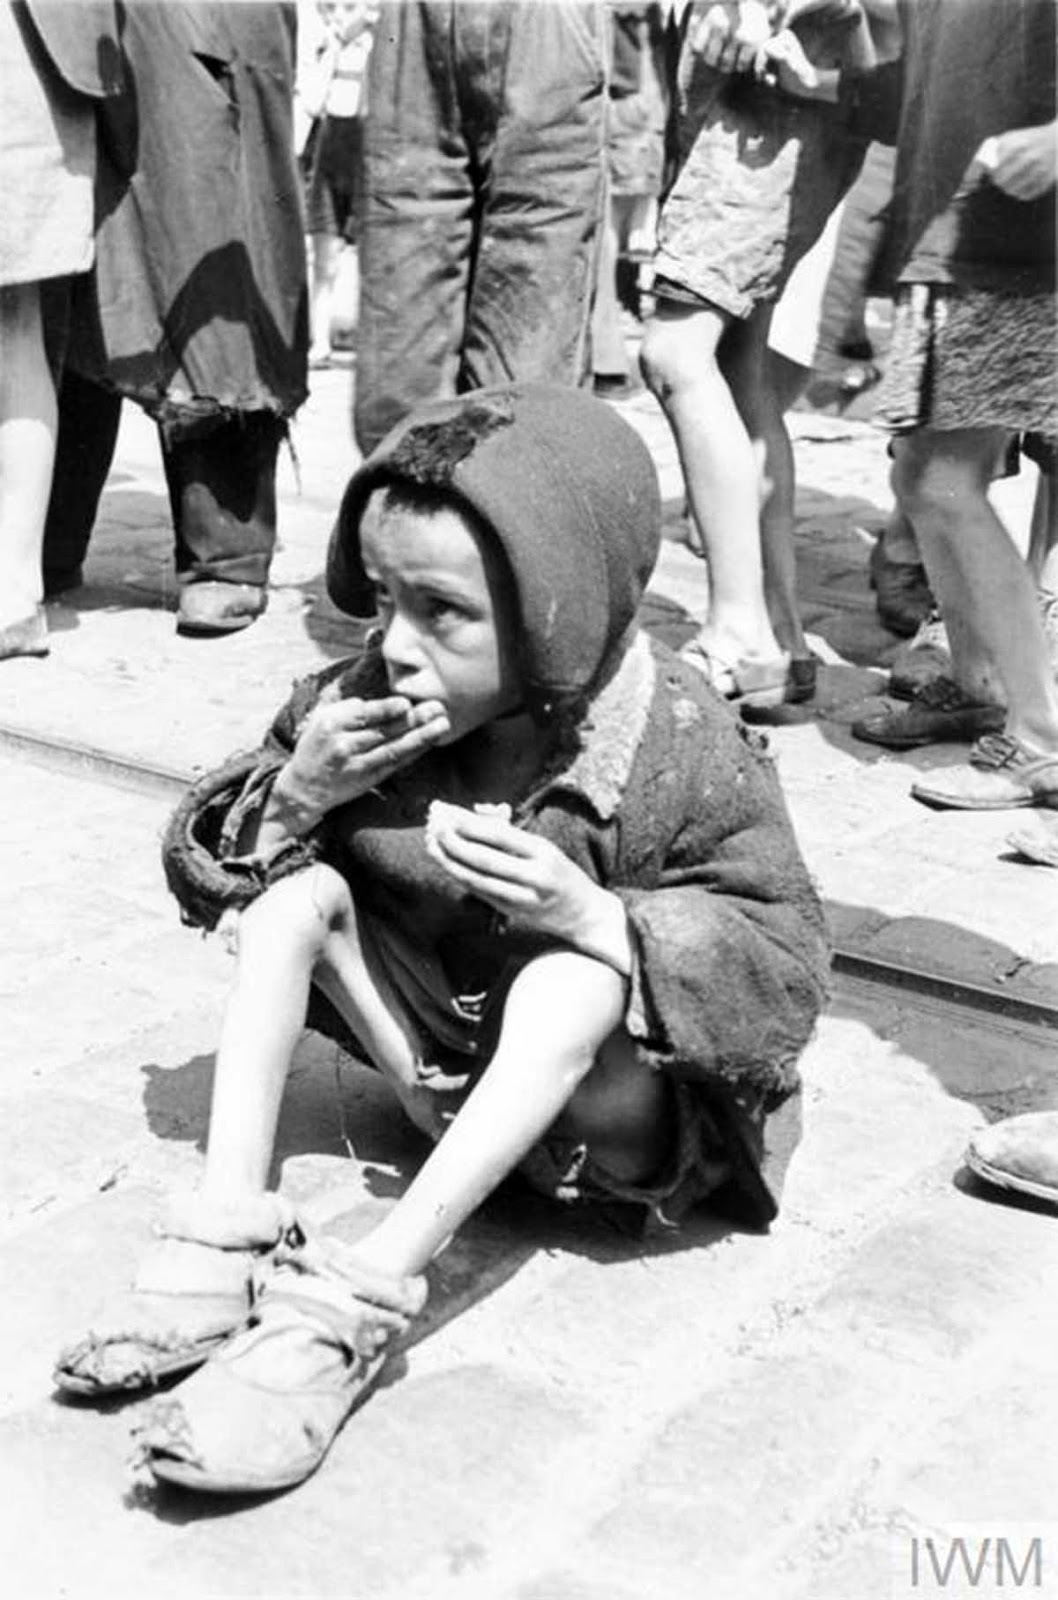 A destitute Jewish child eating a piece of bread in the street of the ghetto.